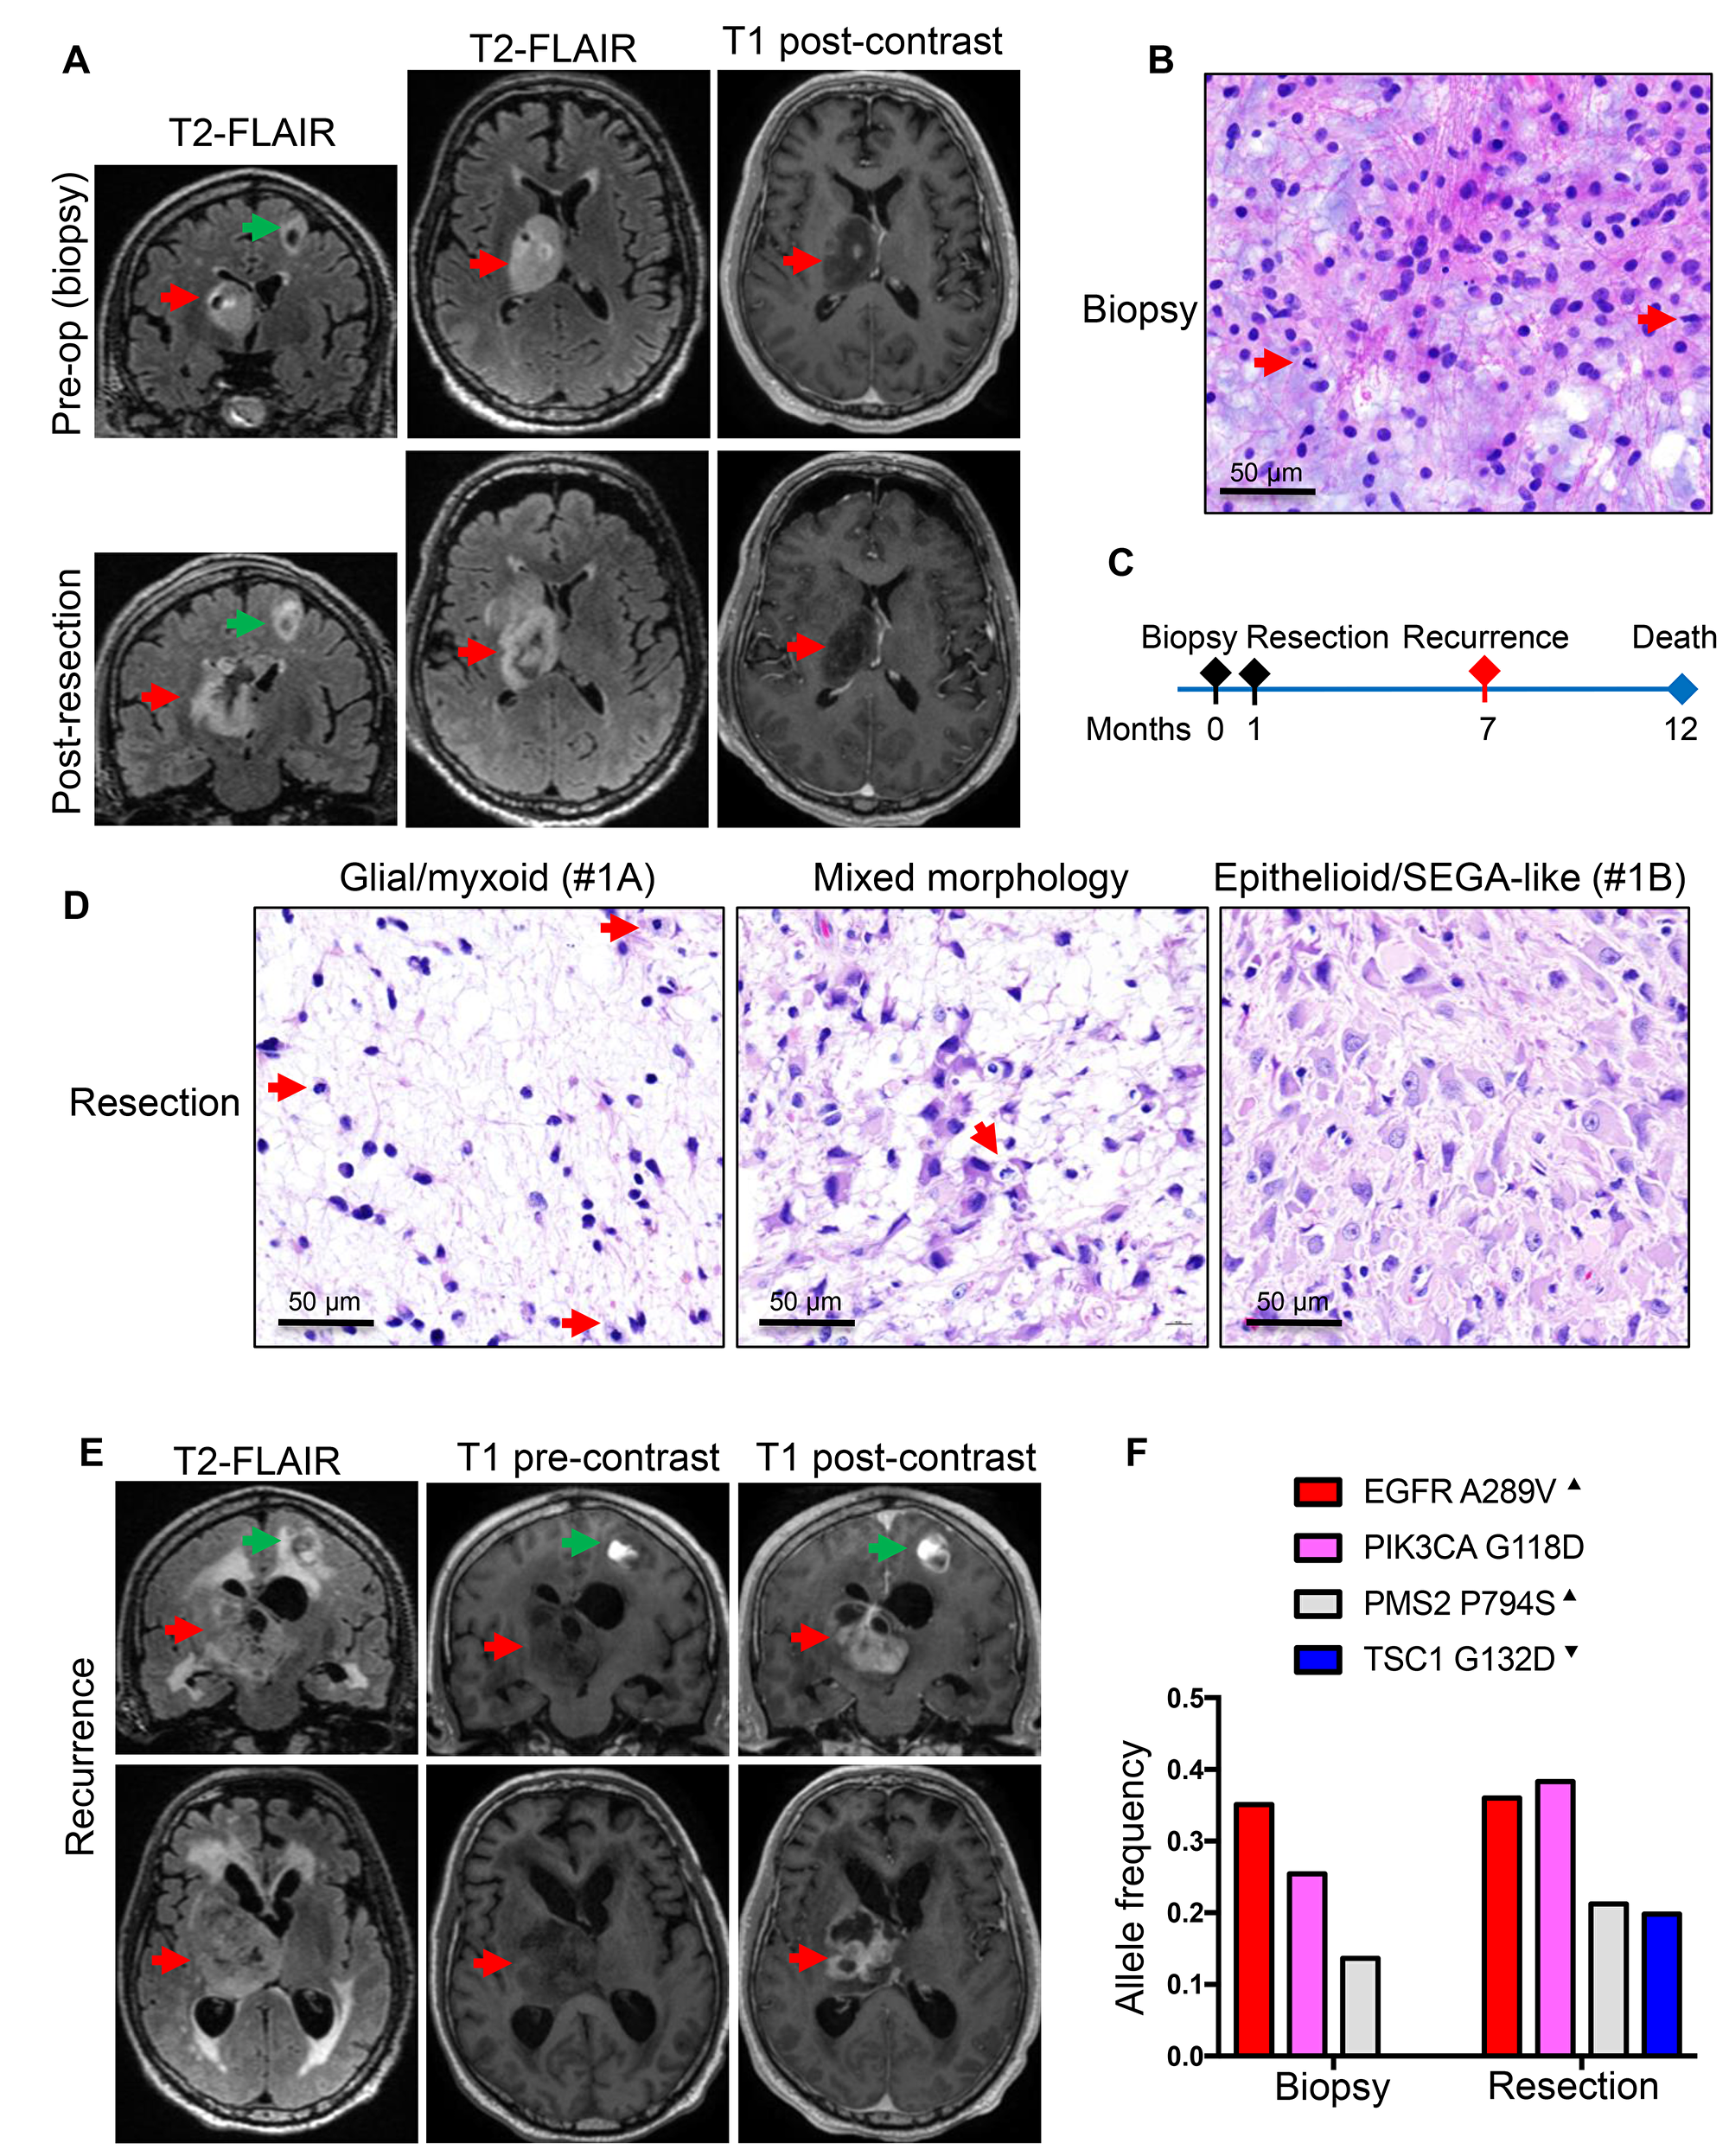 Patient 1: Aggressive thalamic anaplastic astrocytoma with TSC1 mutation and 1-year survival.